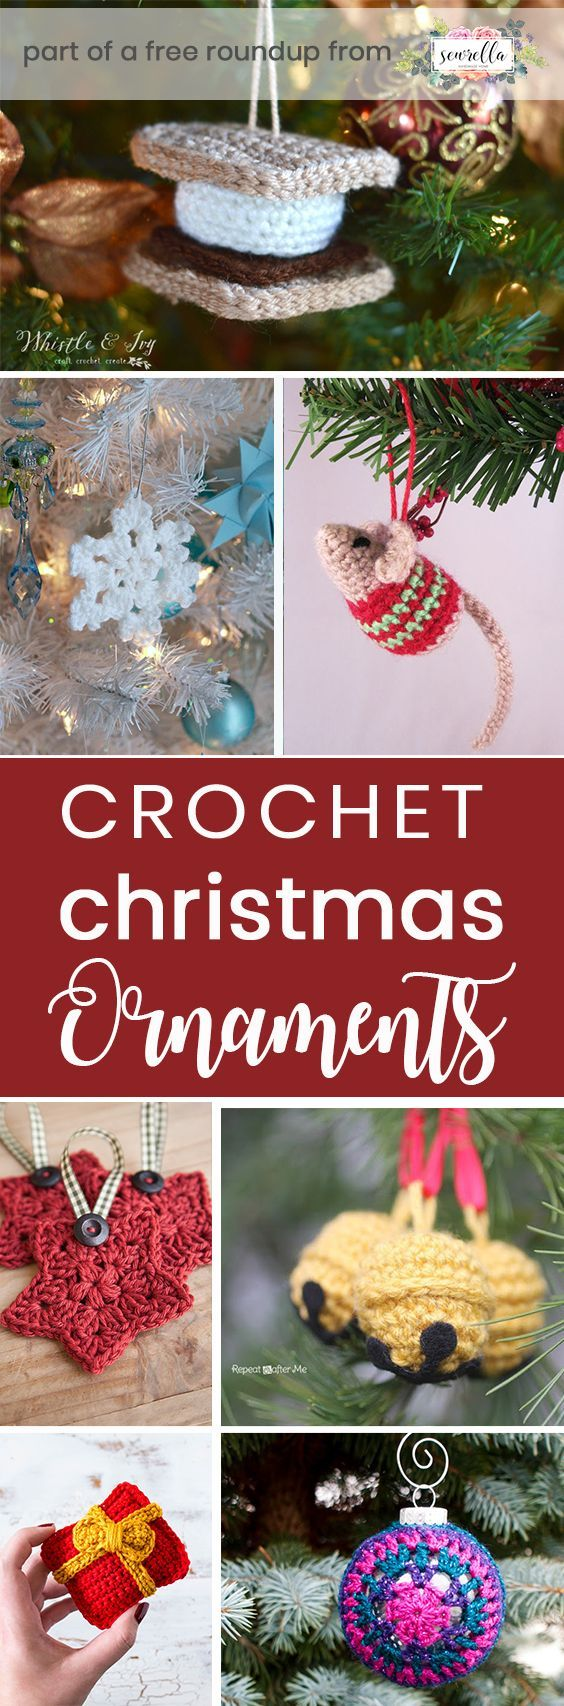 The Ultimate Crochet Christmas Ornaments Roundup | Crochet christmas ...